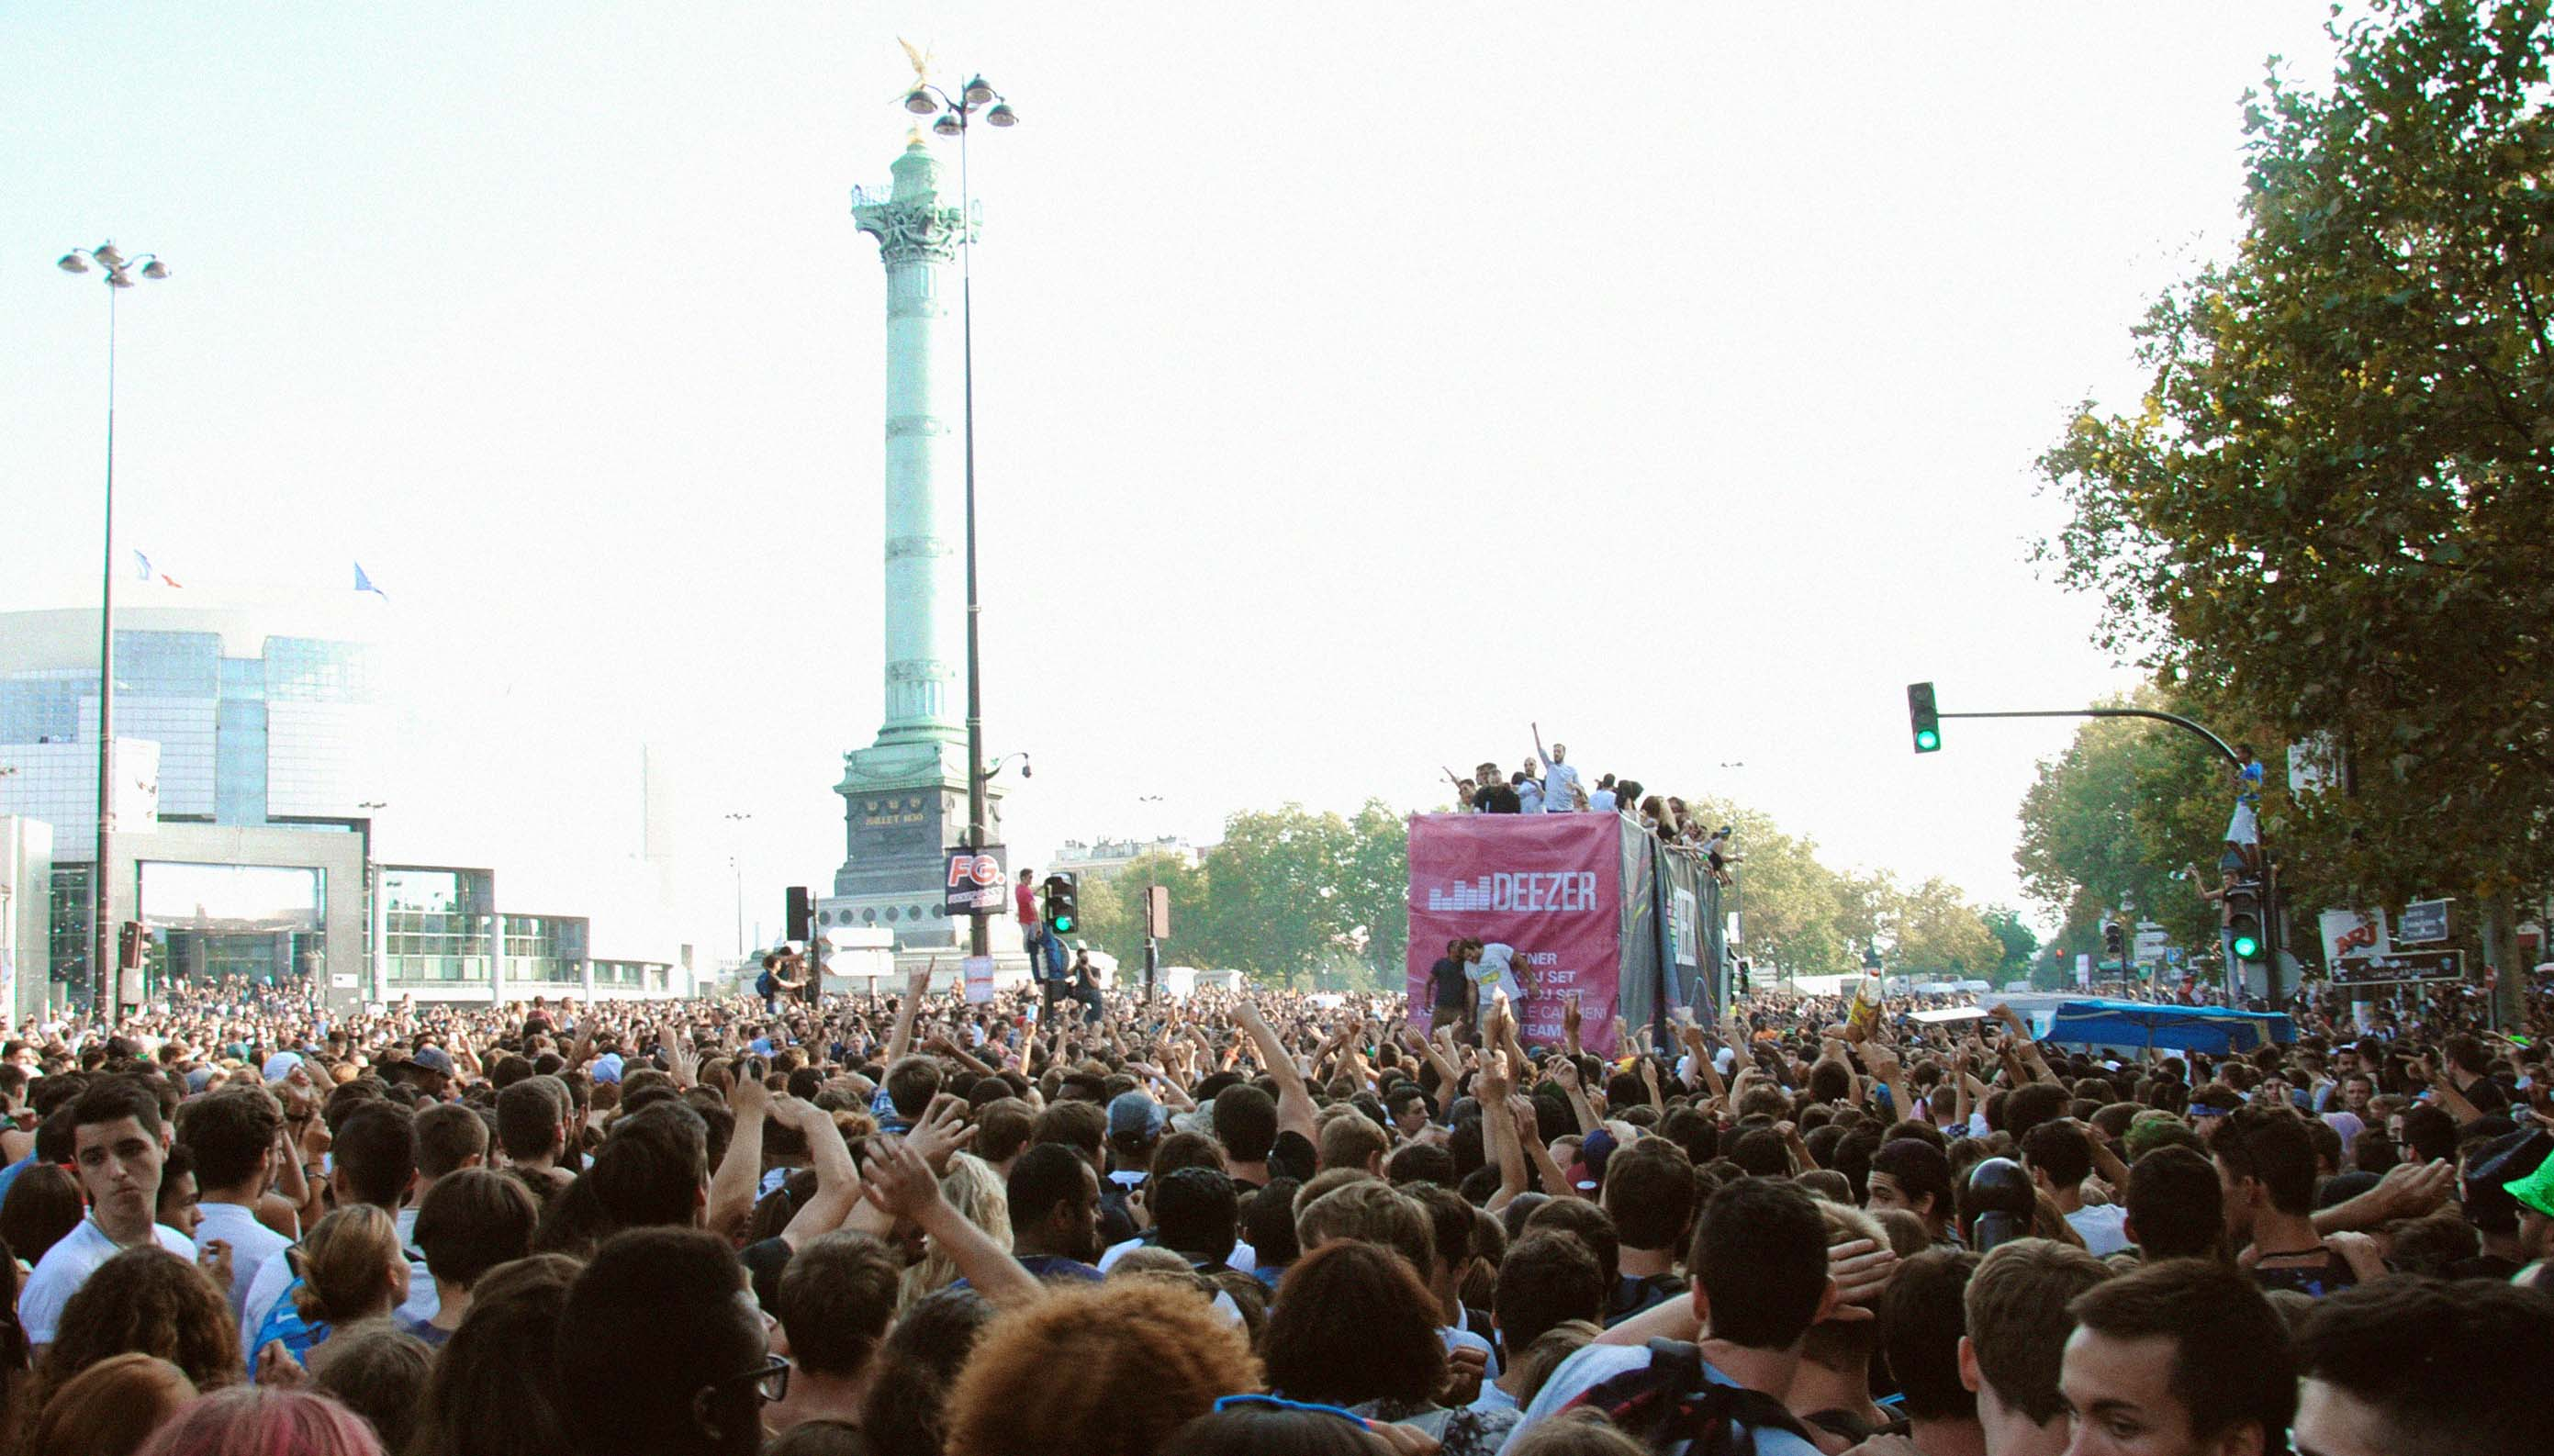 TECHNOPARADE 14